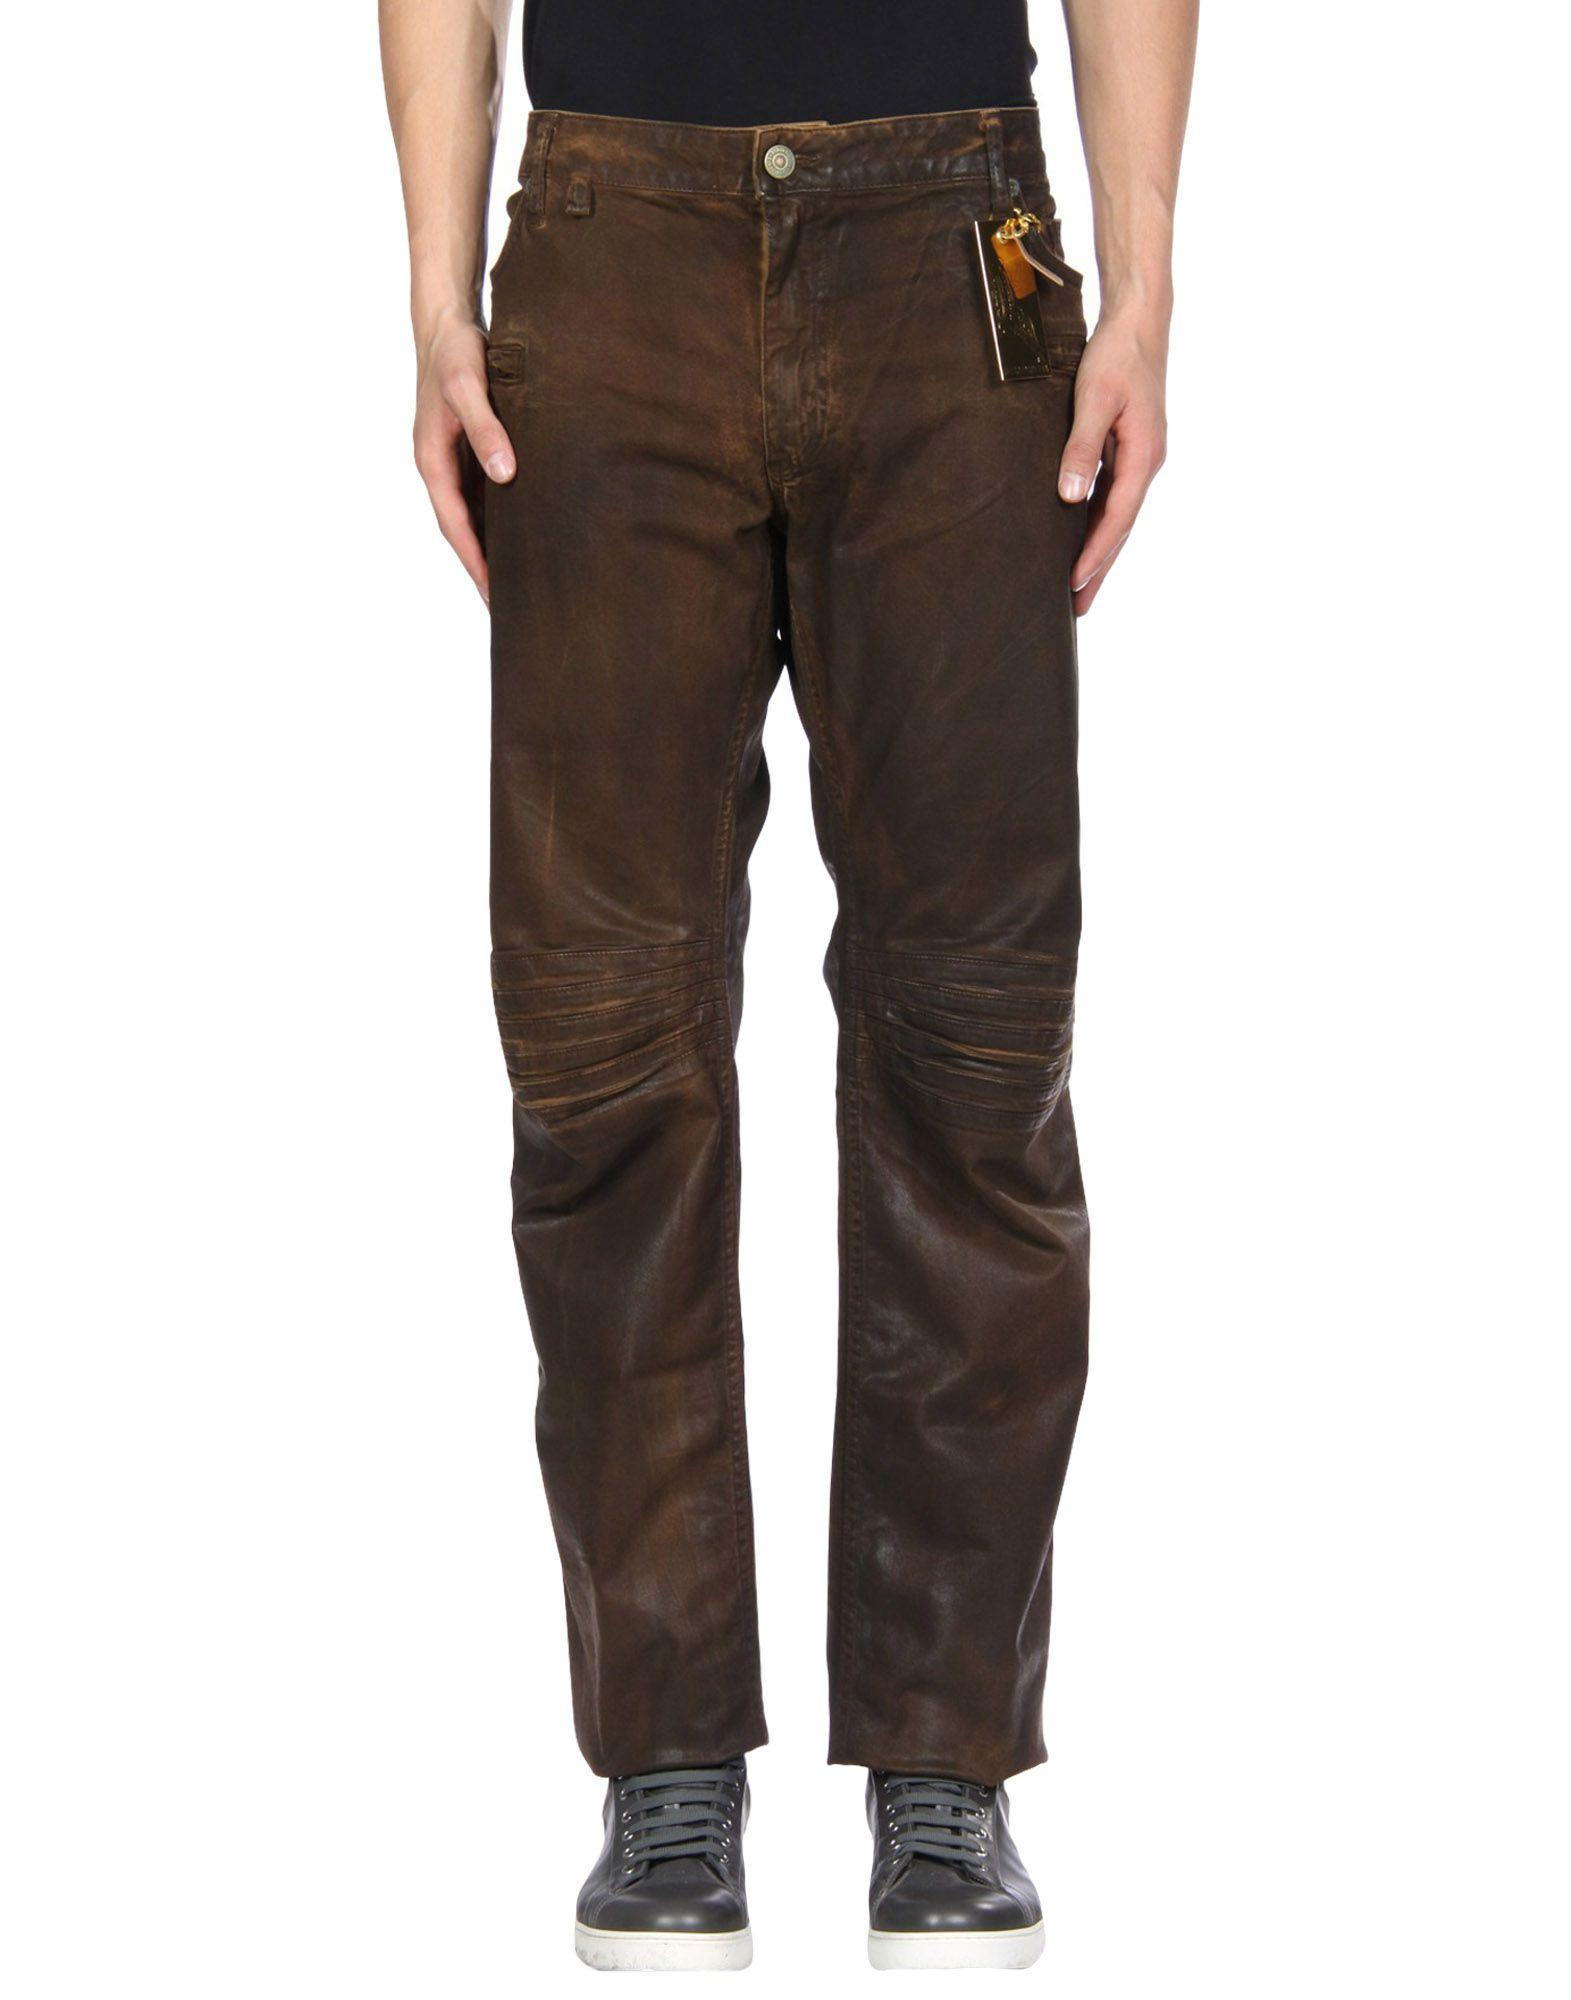 Robin's Jean Casual Pants In Brown